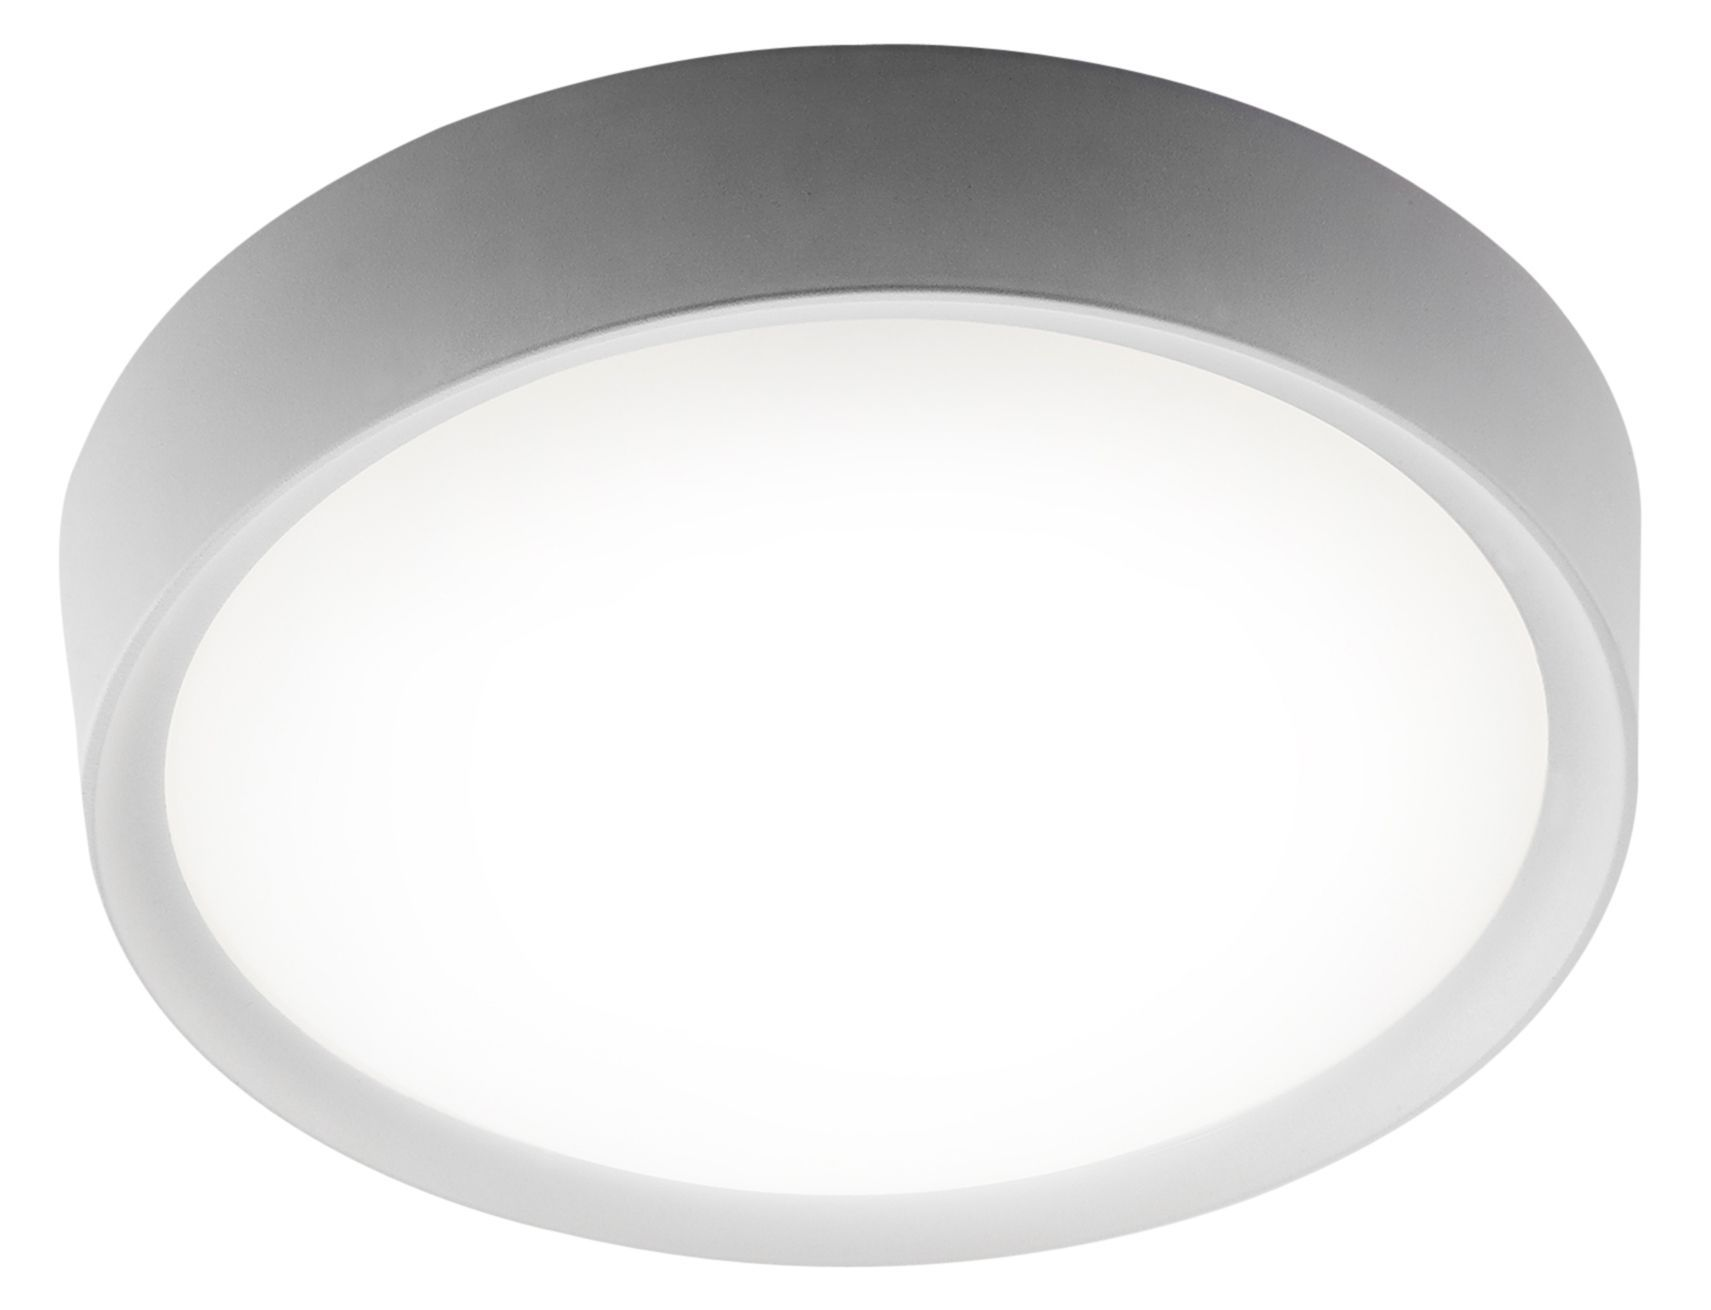 Ruth White Frosted Bathroom Flush Light B Q For All Your Home And Garden Supplies And Advice On All Th Ceiling Lights Diy Flush Ceiling Lights Ceiling Lights